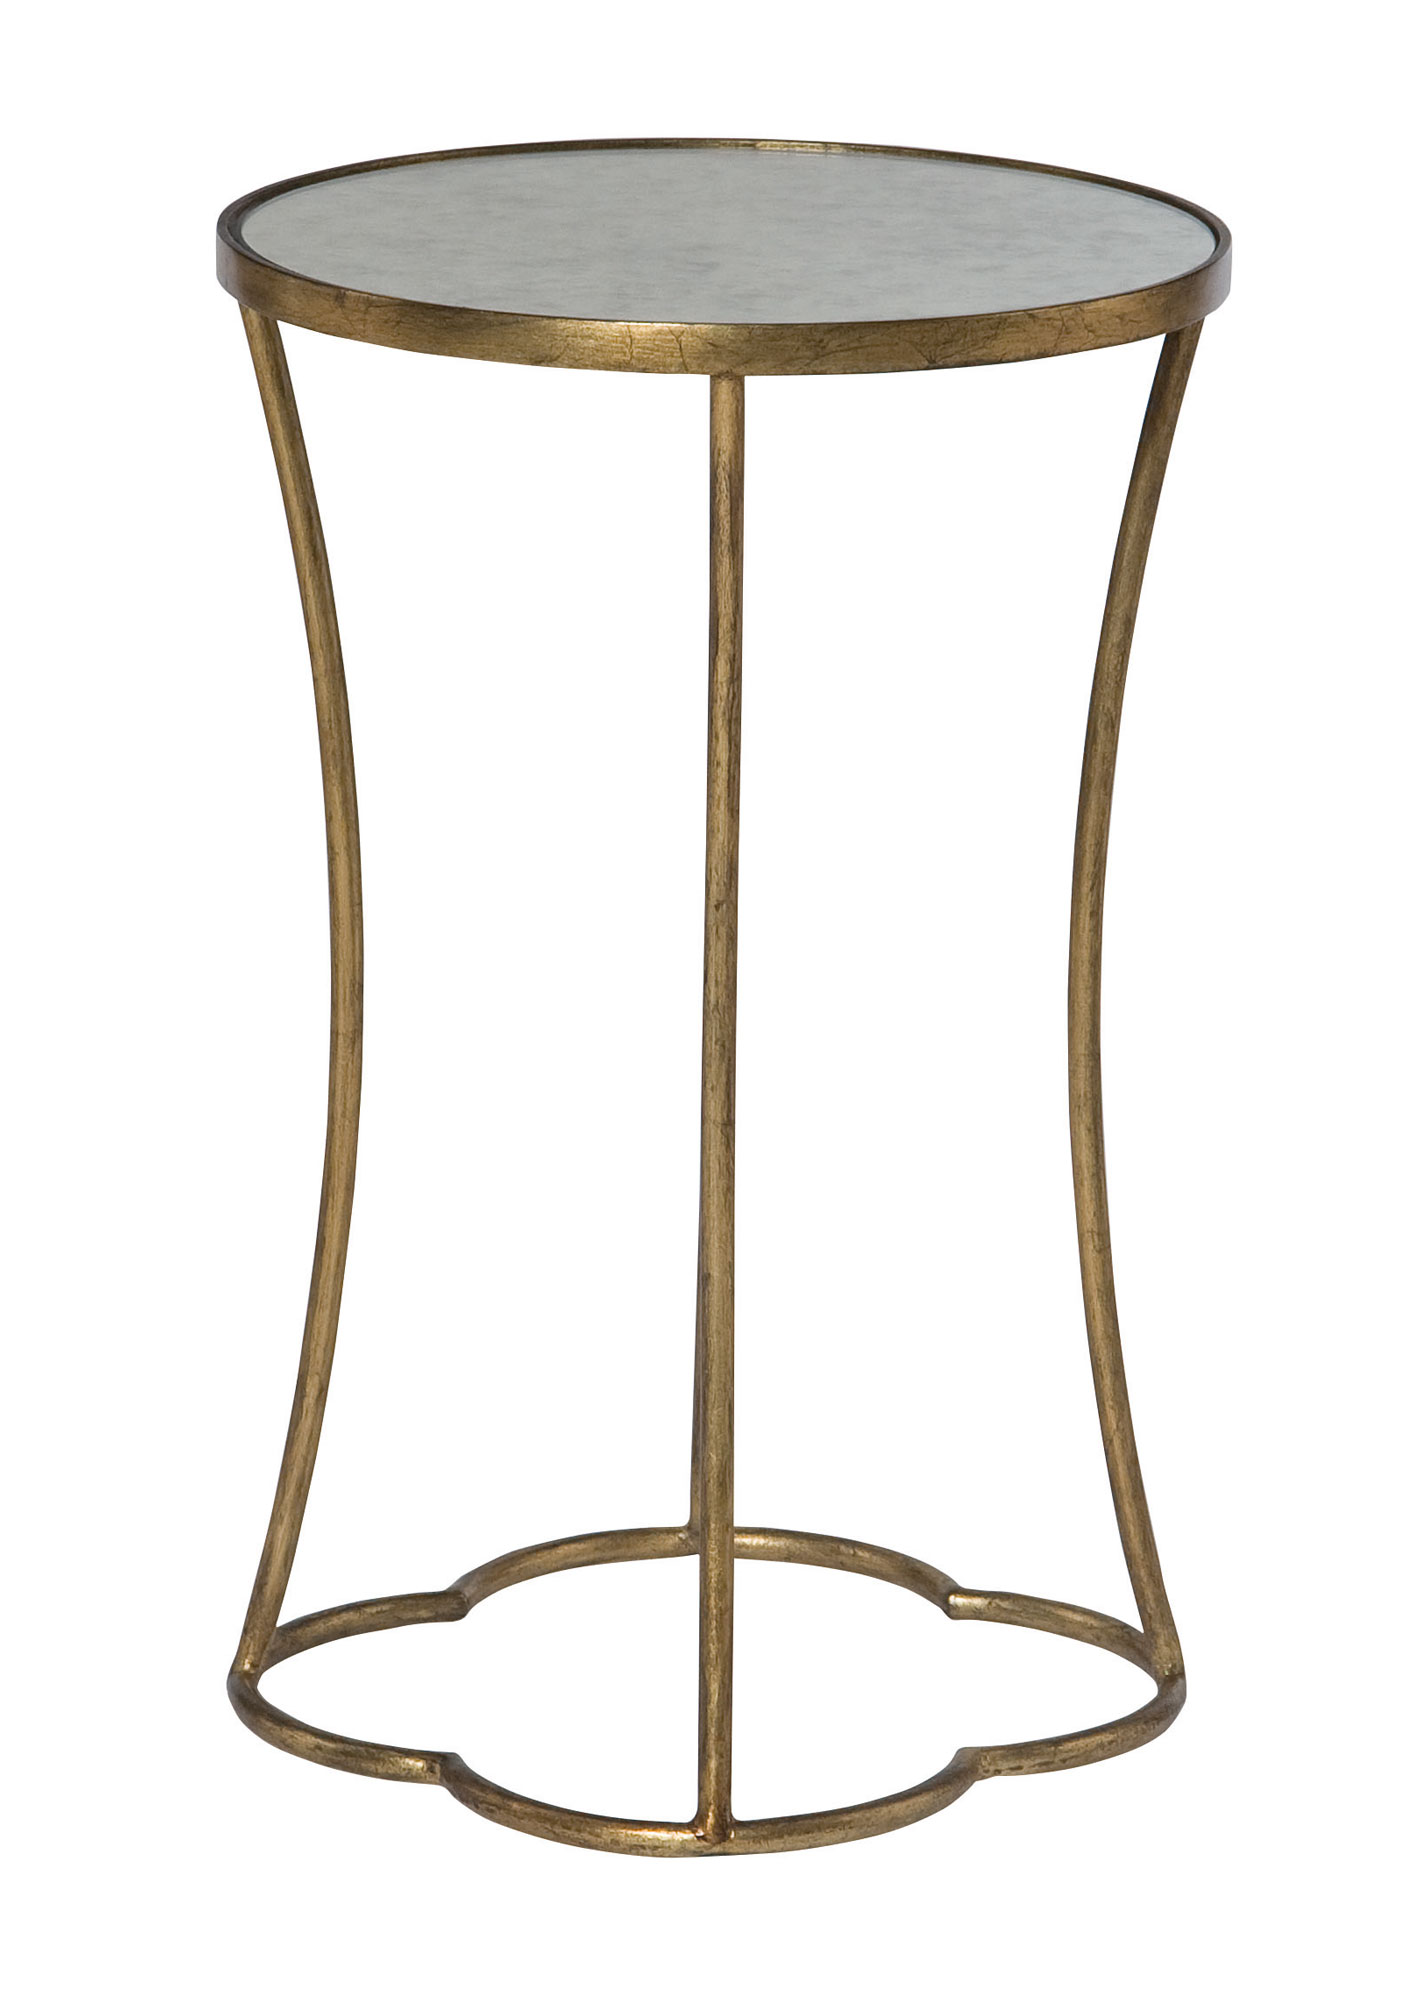 round accent table bernhardt bunnings outdoor furniture chairs roberts pier one counter stools house decorations sectional with ott verizon tablet foyer pieces wide bedside